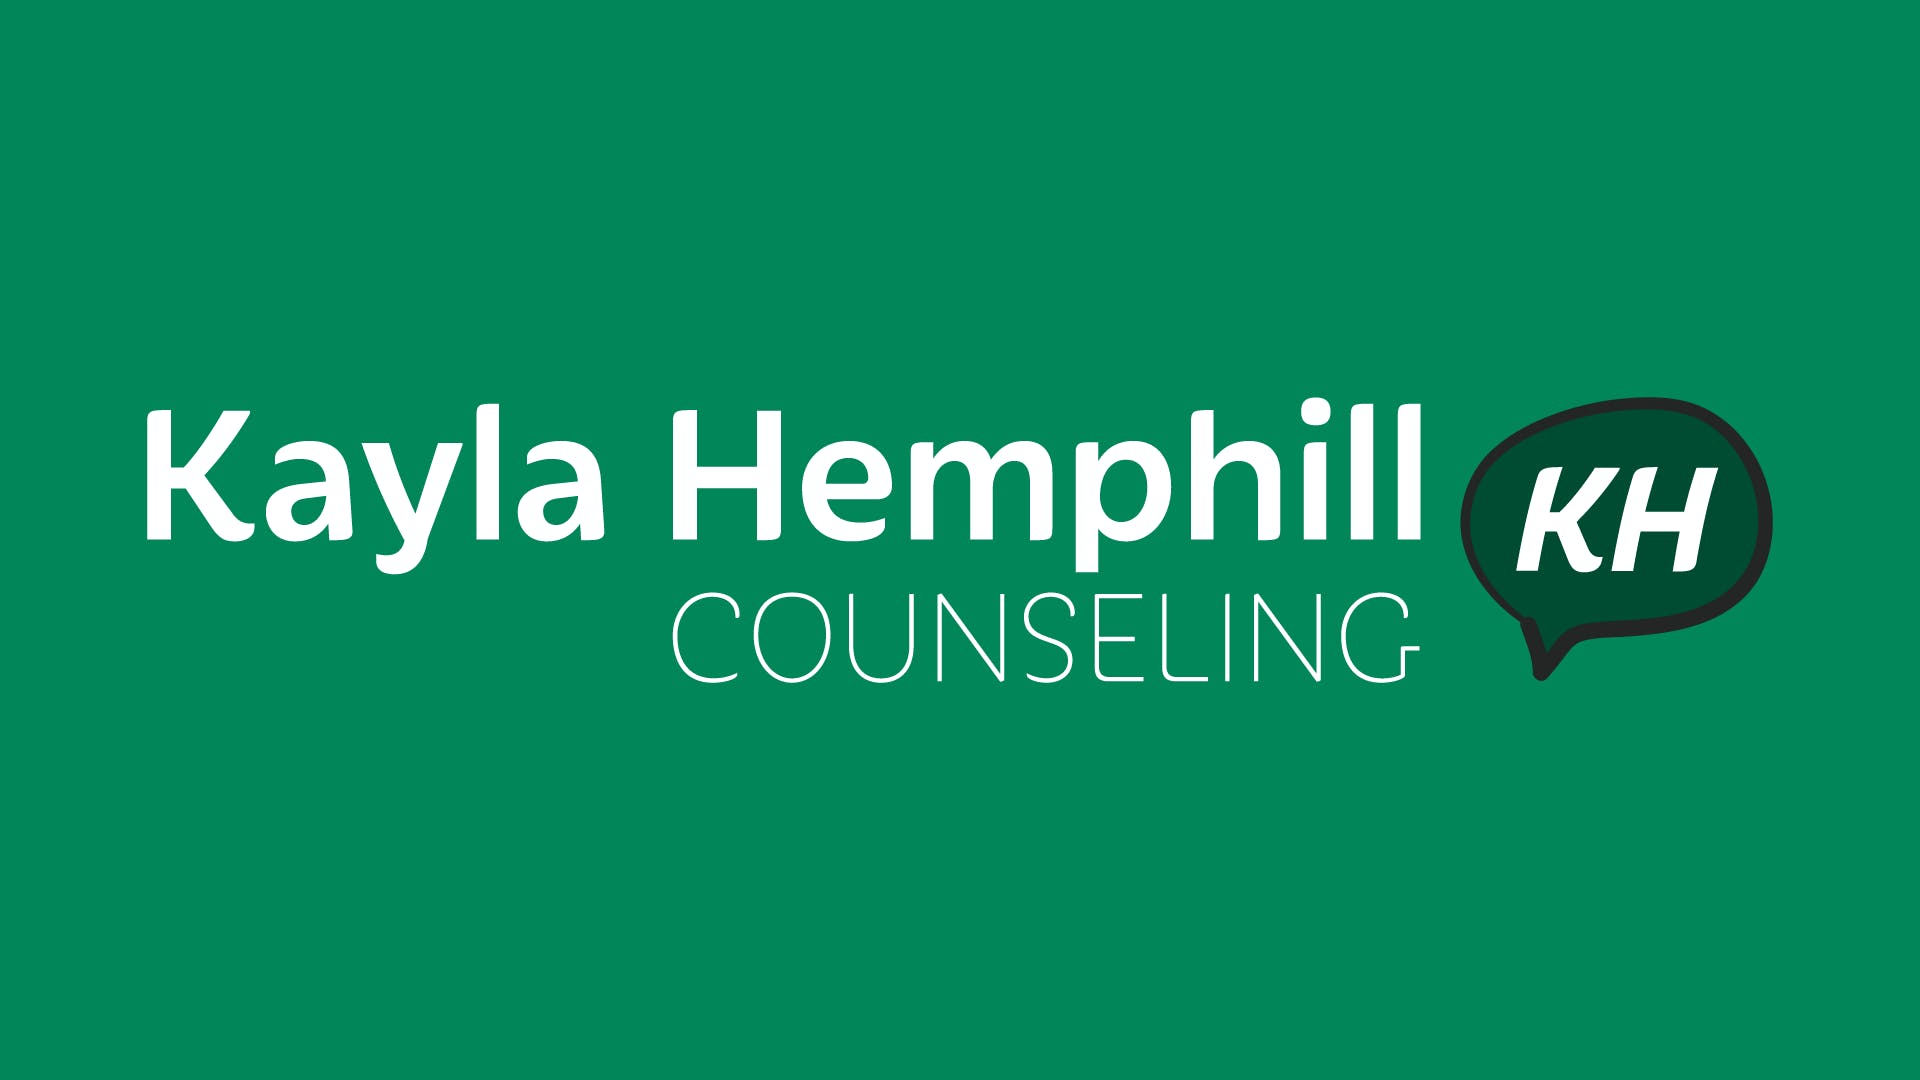 """Logo for Kayla Hemphill Counseling. Centered white text against a green background. The logo icon is a chat bubble with the letters """"KH""""."""